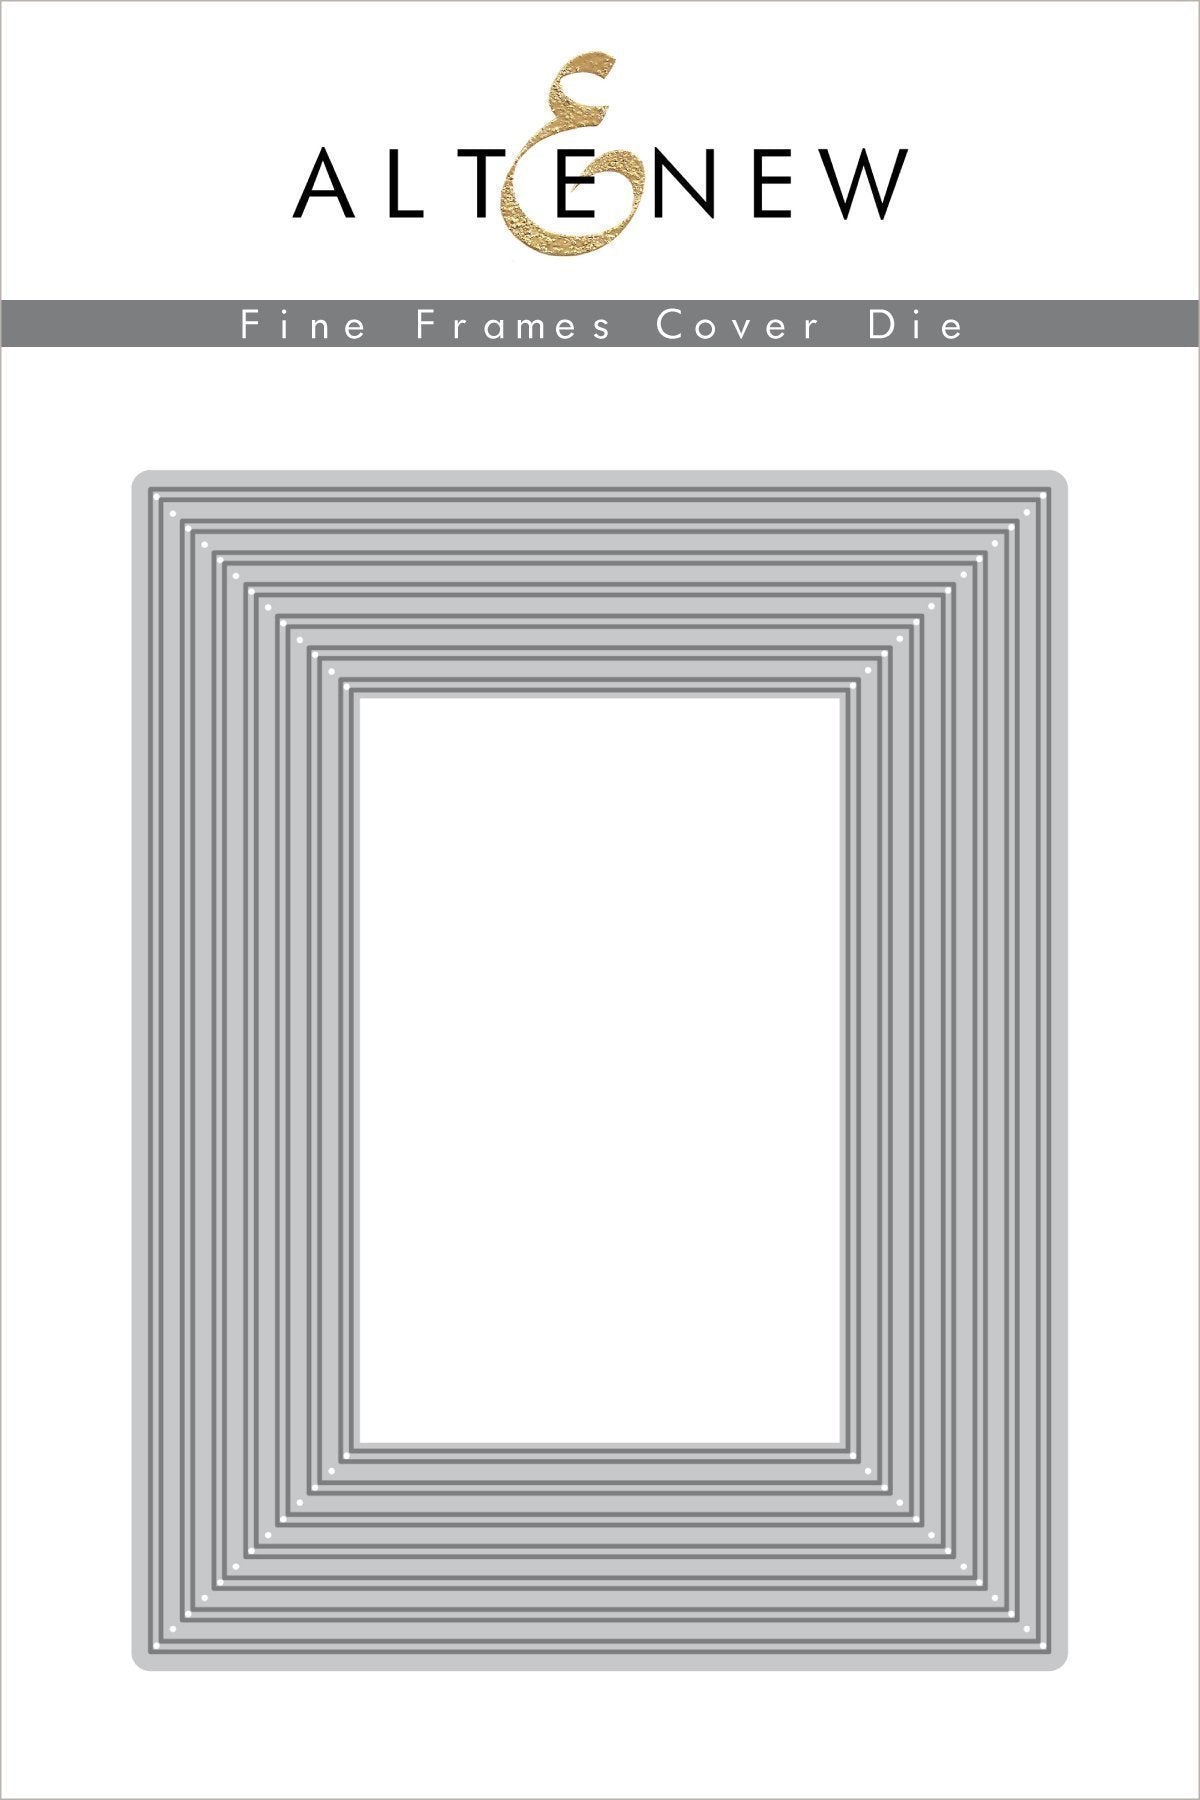 Altenew Fine Frames Cover Die Set | Serendipity Craft Boutique